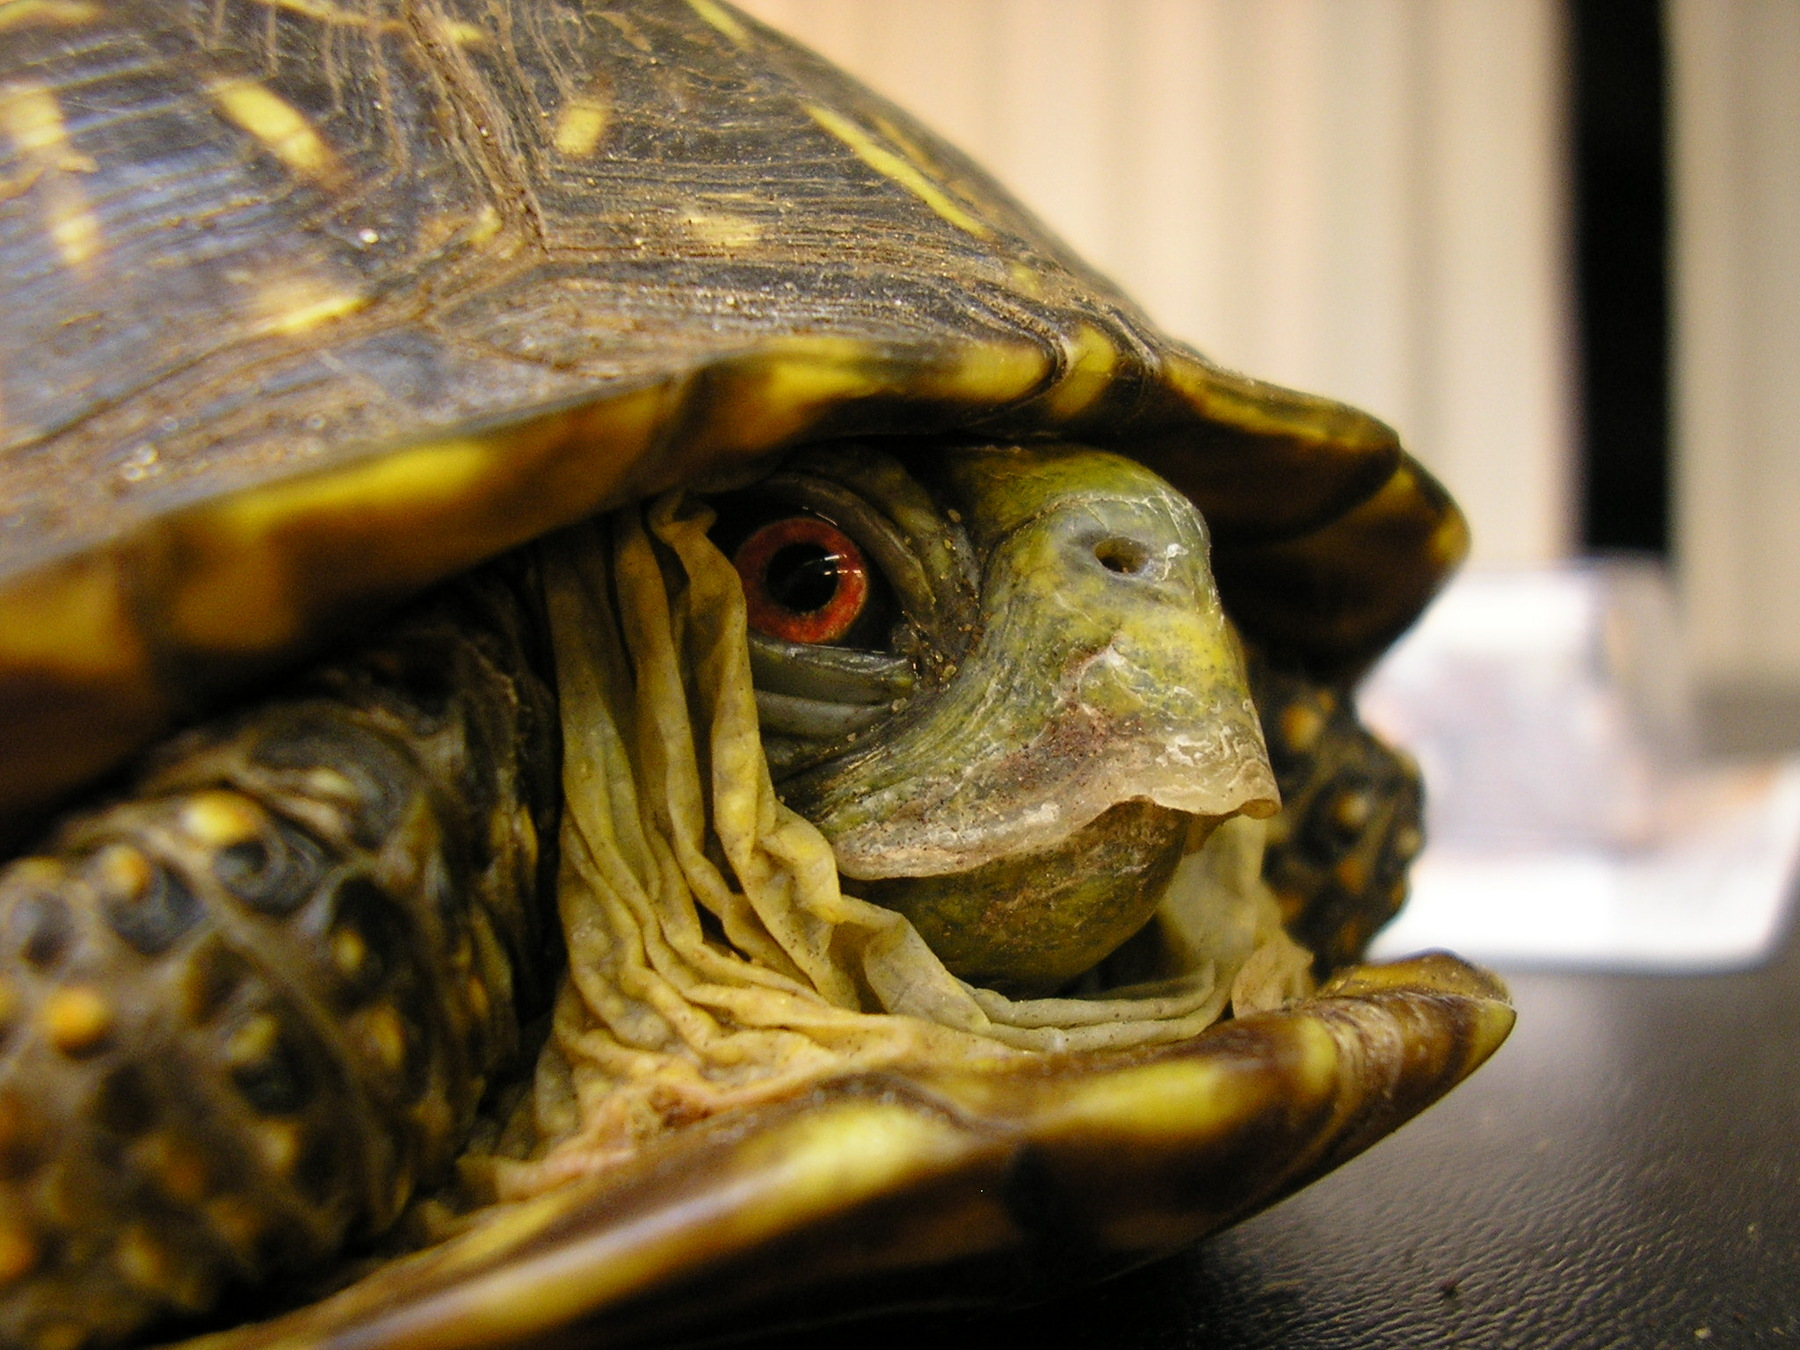 A male Ornate Box Turtle